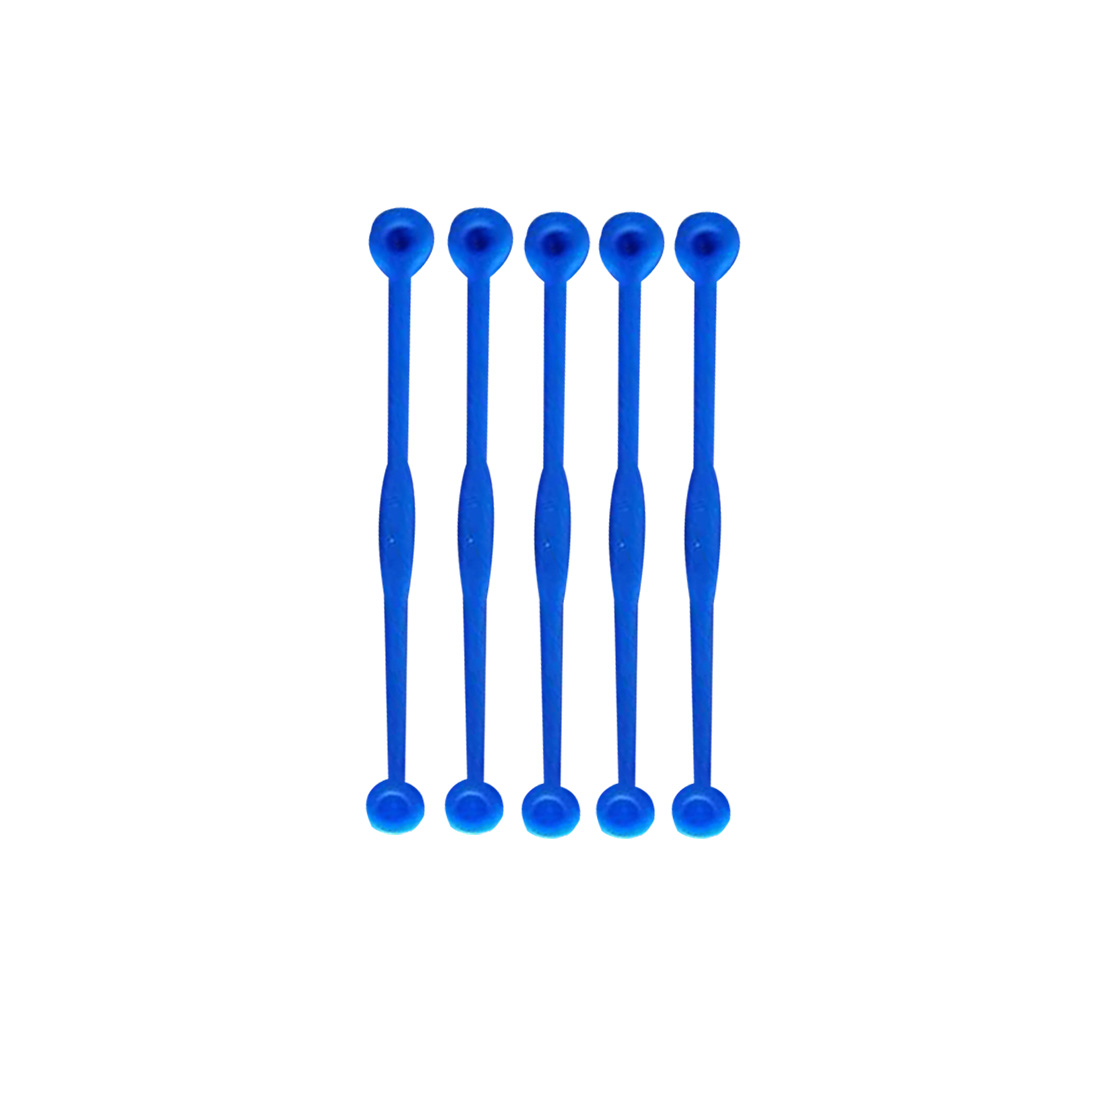 5pcs Portable Toys Squash Reduce Vibration Shock Absorber Long Hook Tennis Racket Damper Silicone Outdoor Games Accessories